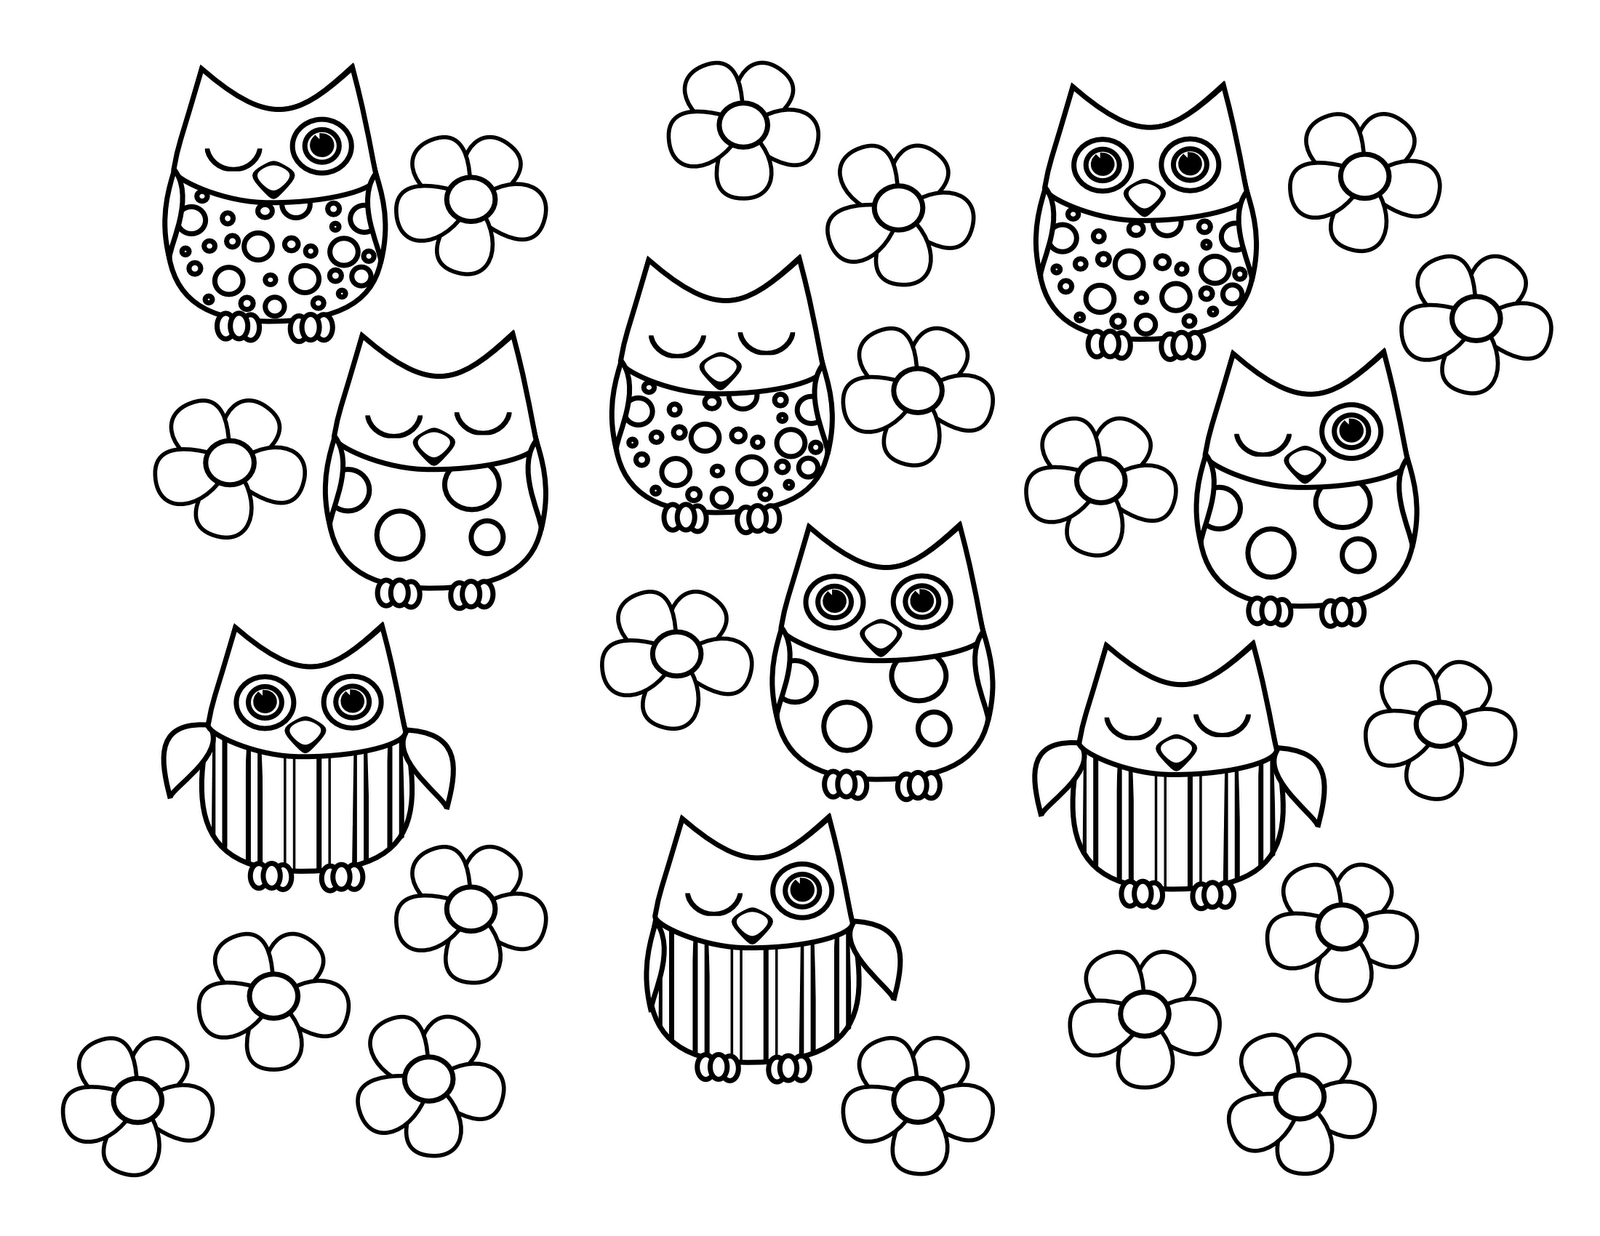 Icolor Little Kids I Icolor Little Kids I Pinterest Owl